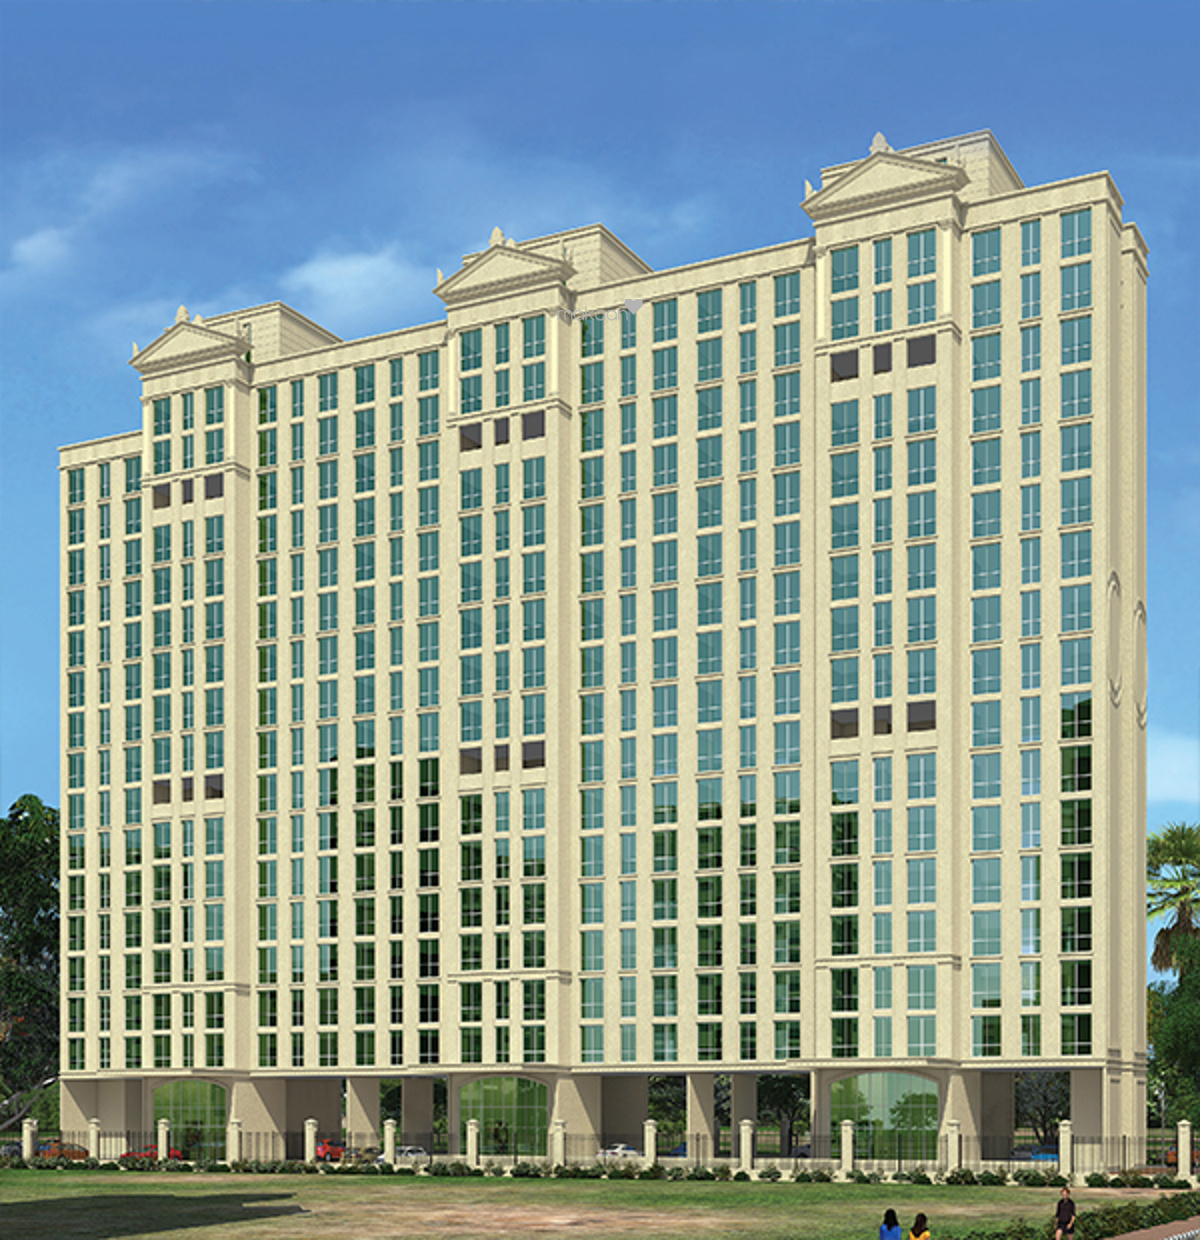 1200 sq ft 3BHK 3BHK+3T (1,200 sq ft) Property By Shreedham Consultancy In Maple A B and C Wing, Powai